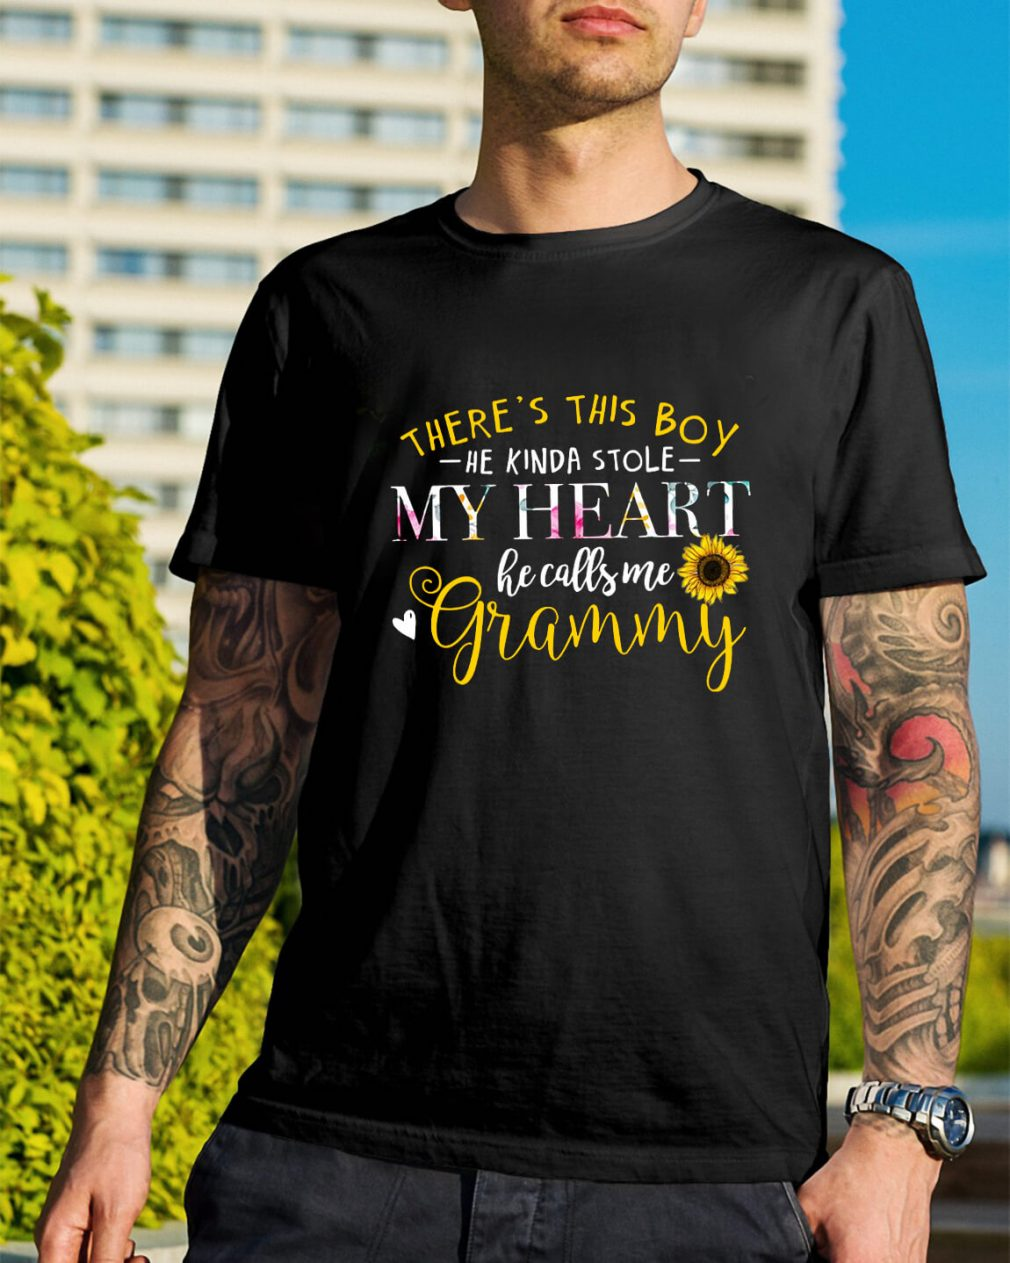 There's this boy he kinda stole my heart he calls me grammy shirt